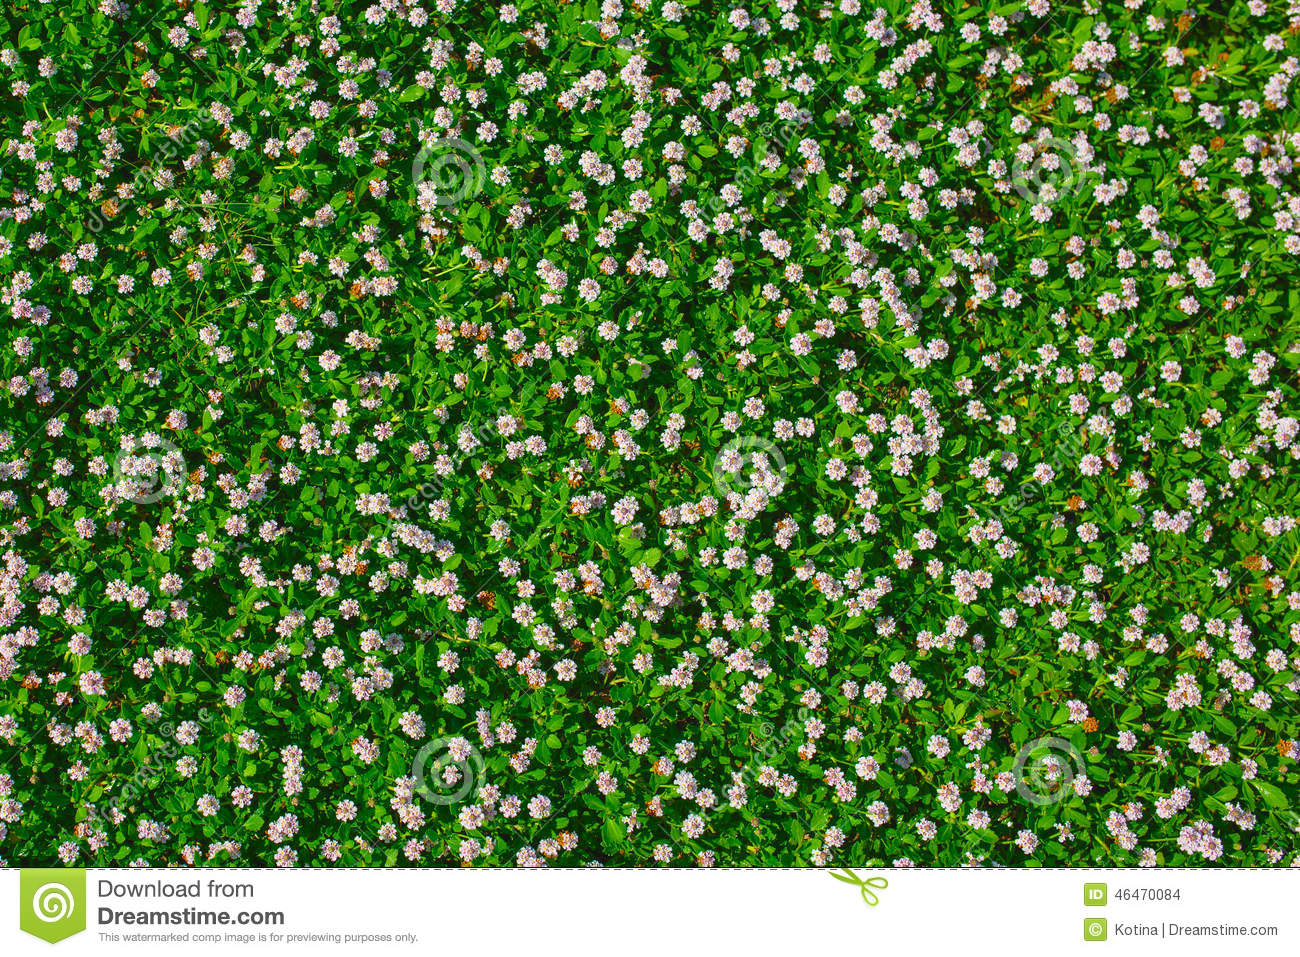 Top view of green grass with small white flowers stock photo image top view of green grass with small white flowers mightylinksfo